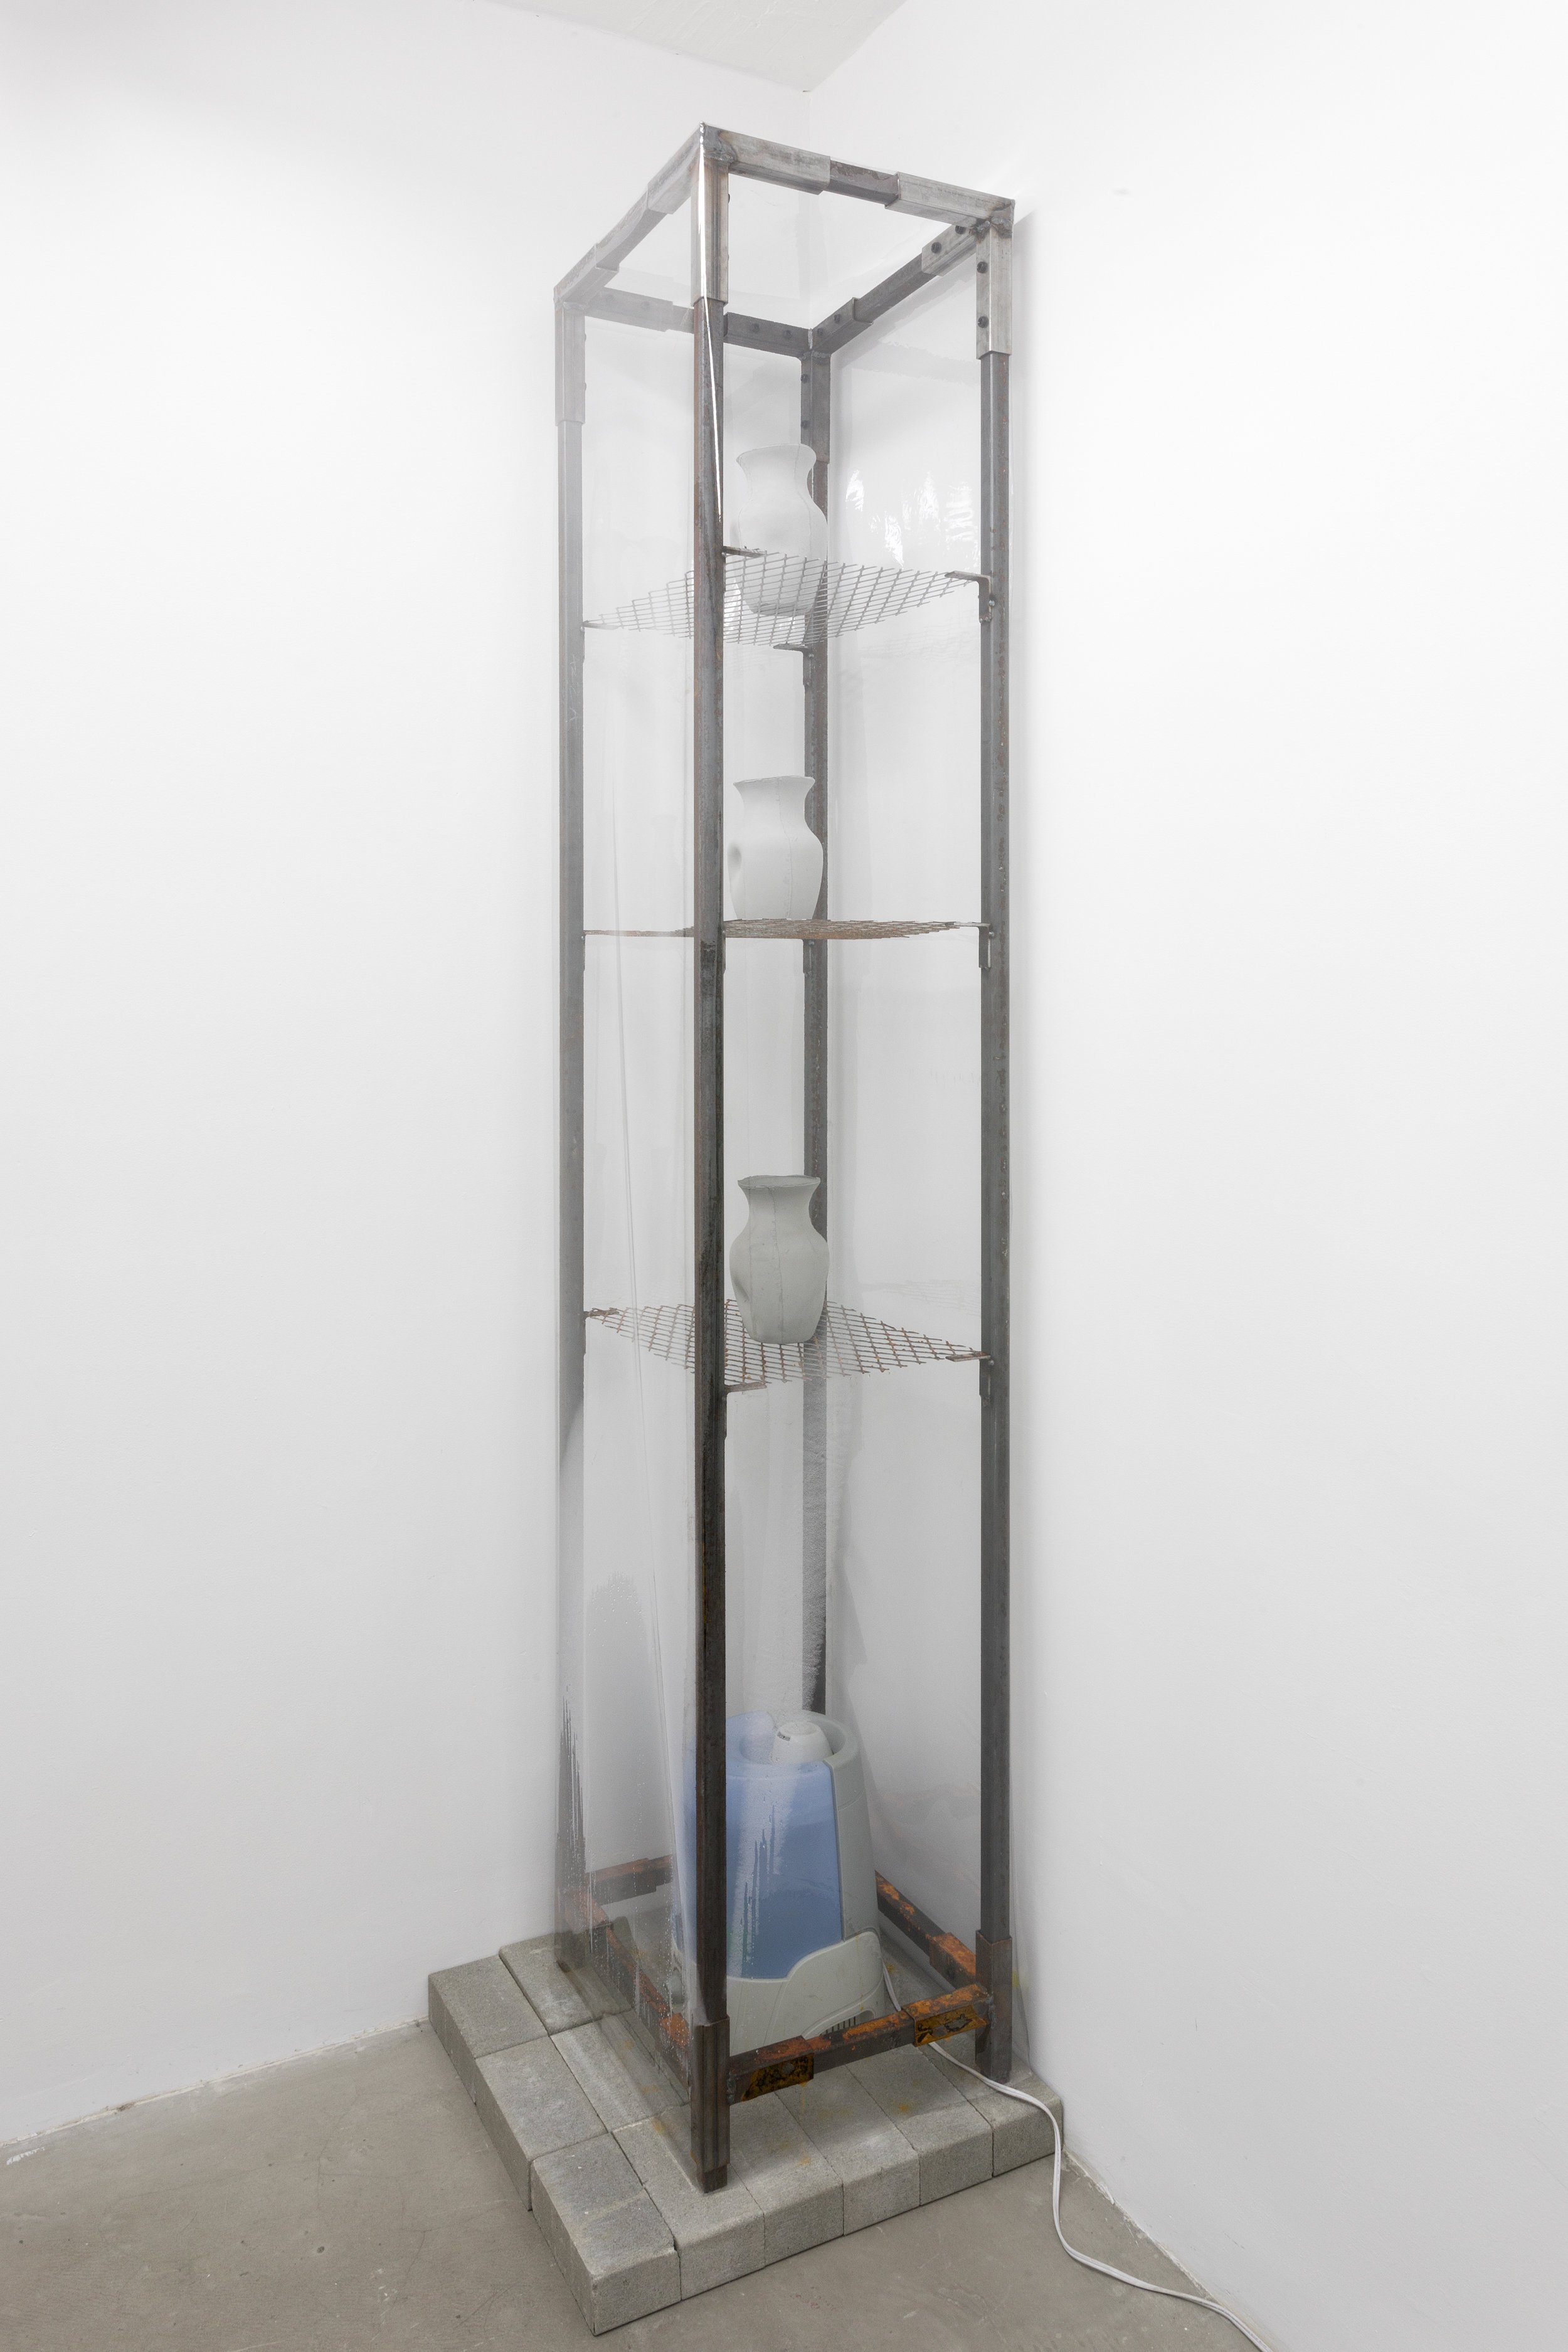 Azza El Siddique,  let me hear your sweat , 2018, Steel, unfired slip, humidifier, water, concrete bricks, Sandalya perfume oil, Dimensions variable